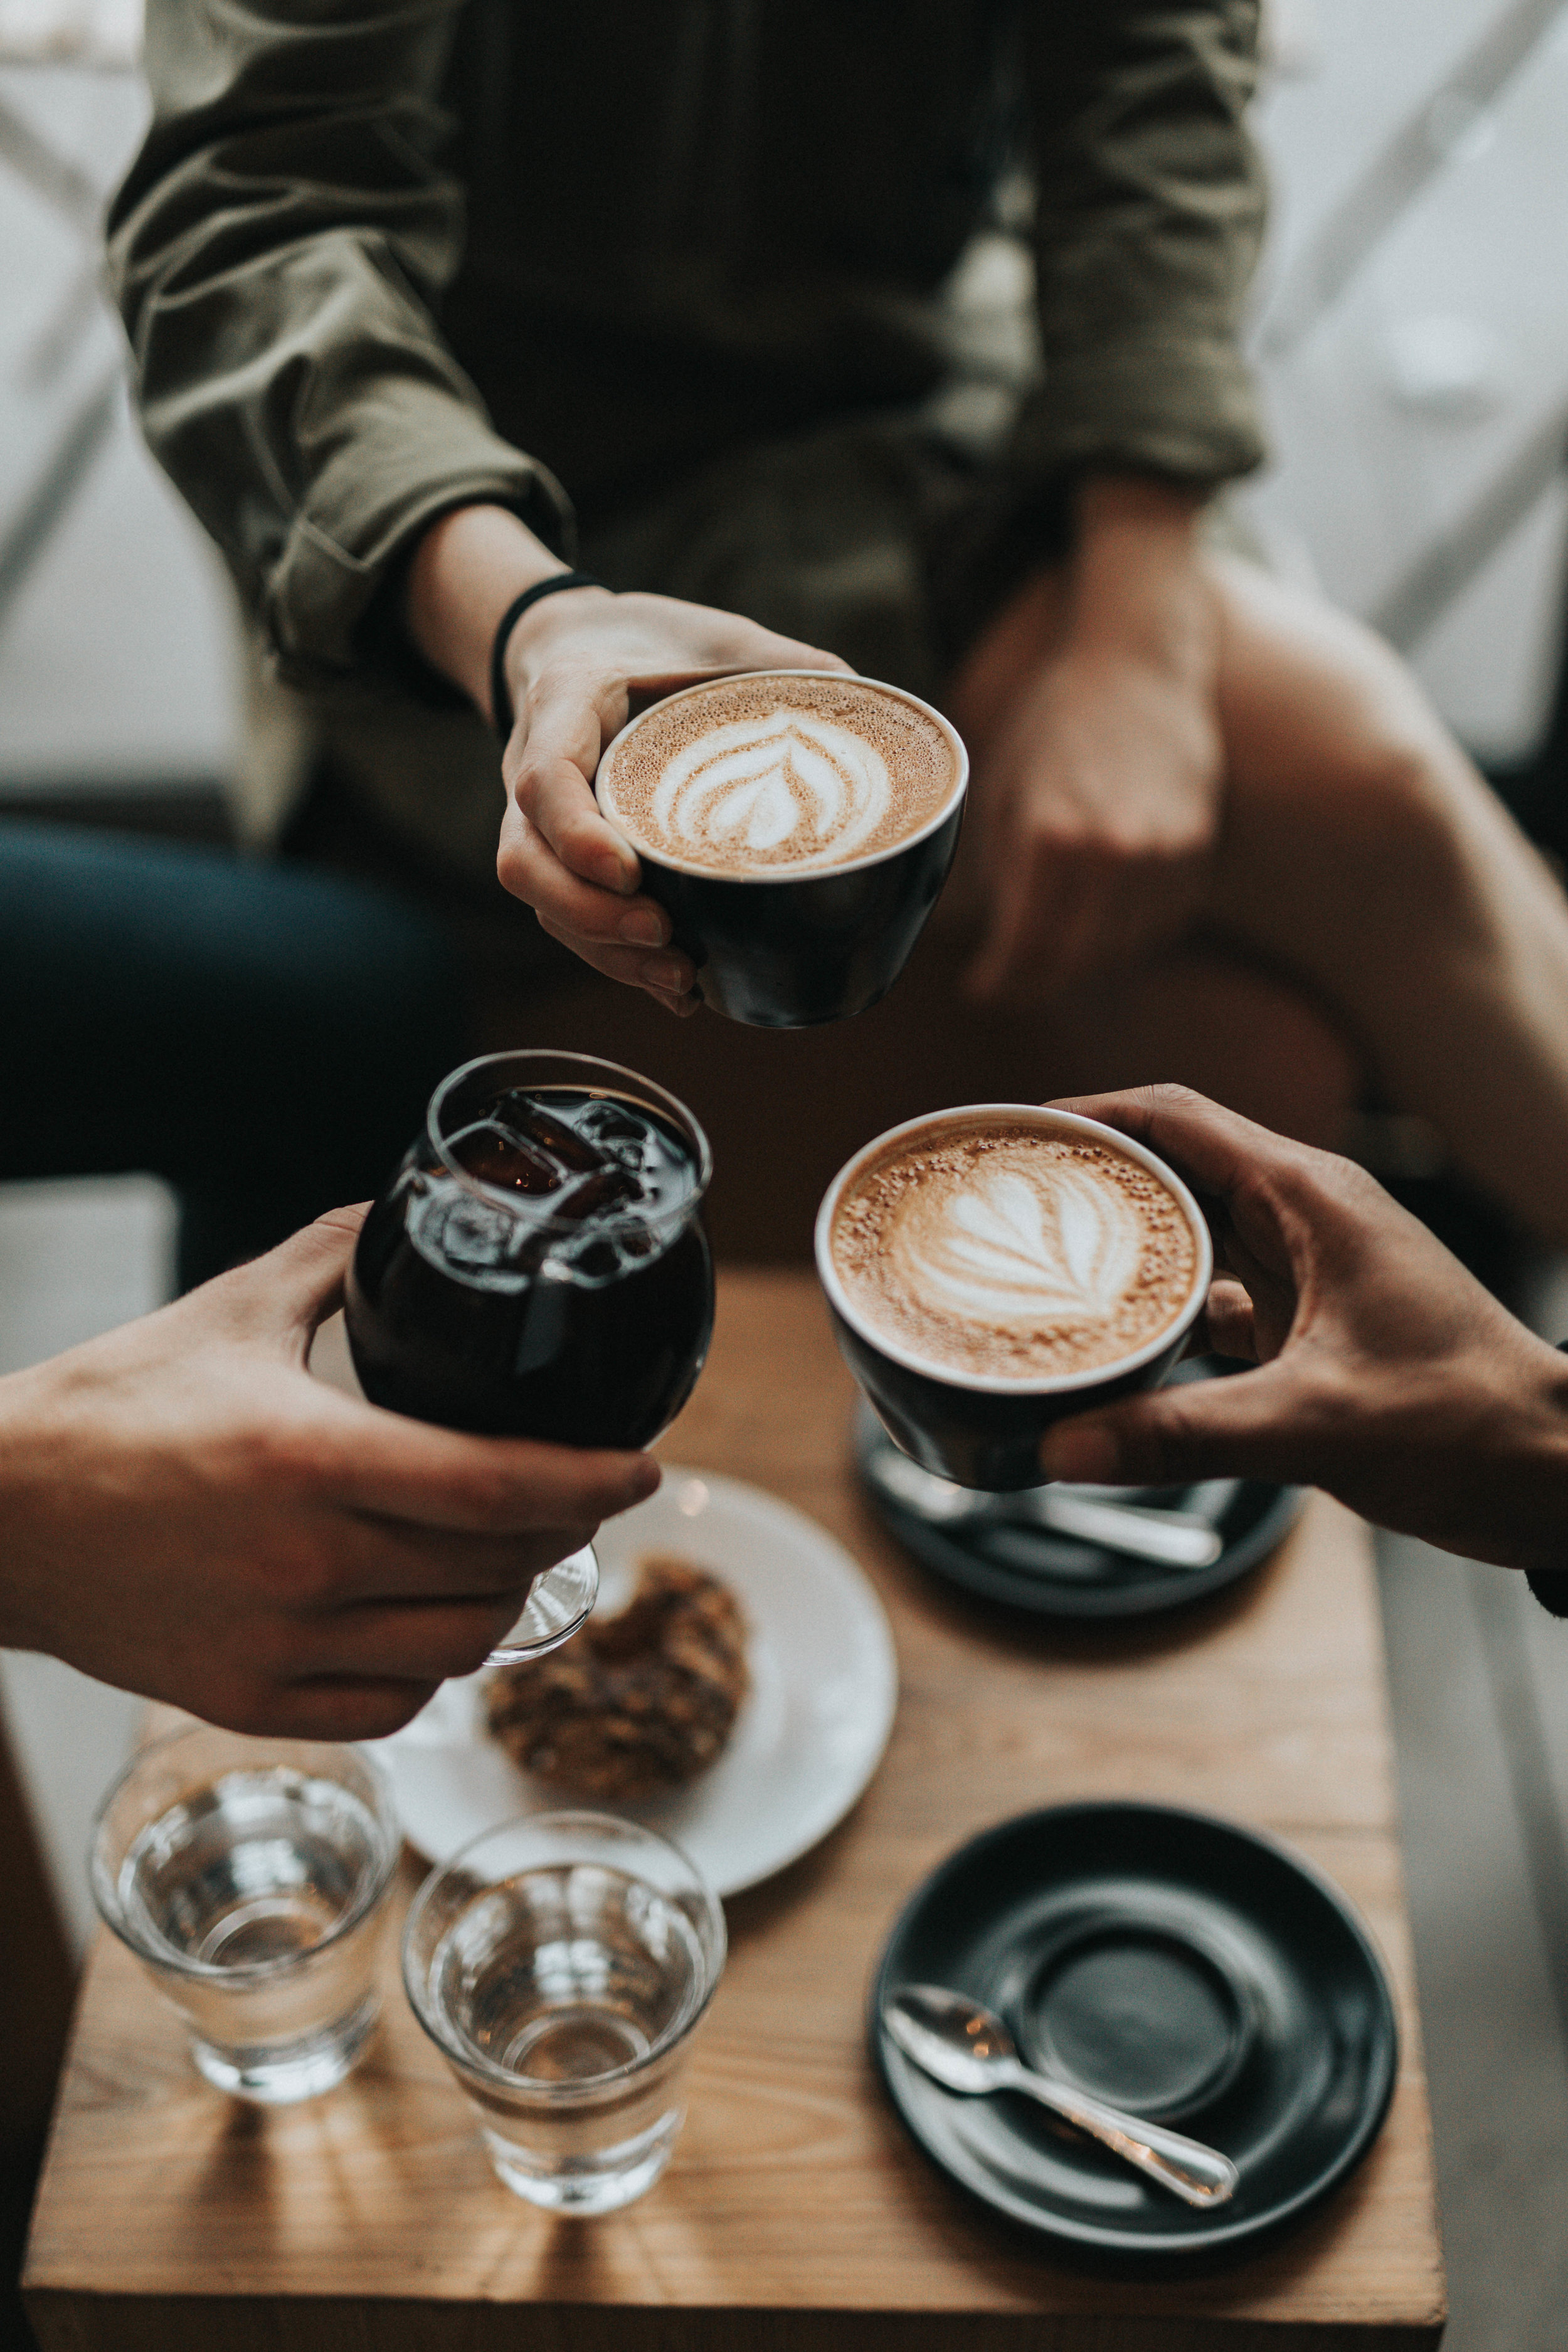 Let's All Meet Up For Coffee! - Chat, ask questions, get to know Becky a bit more and meet new friends!-Wed. May 22nd 9:30am-10:30am-Color Coffee in Eagle